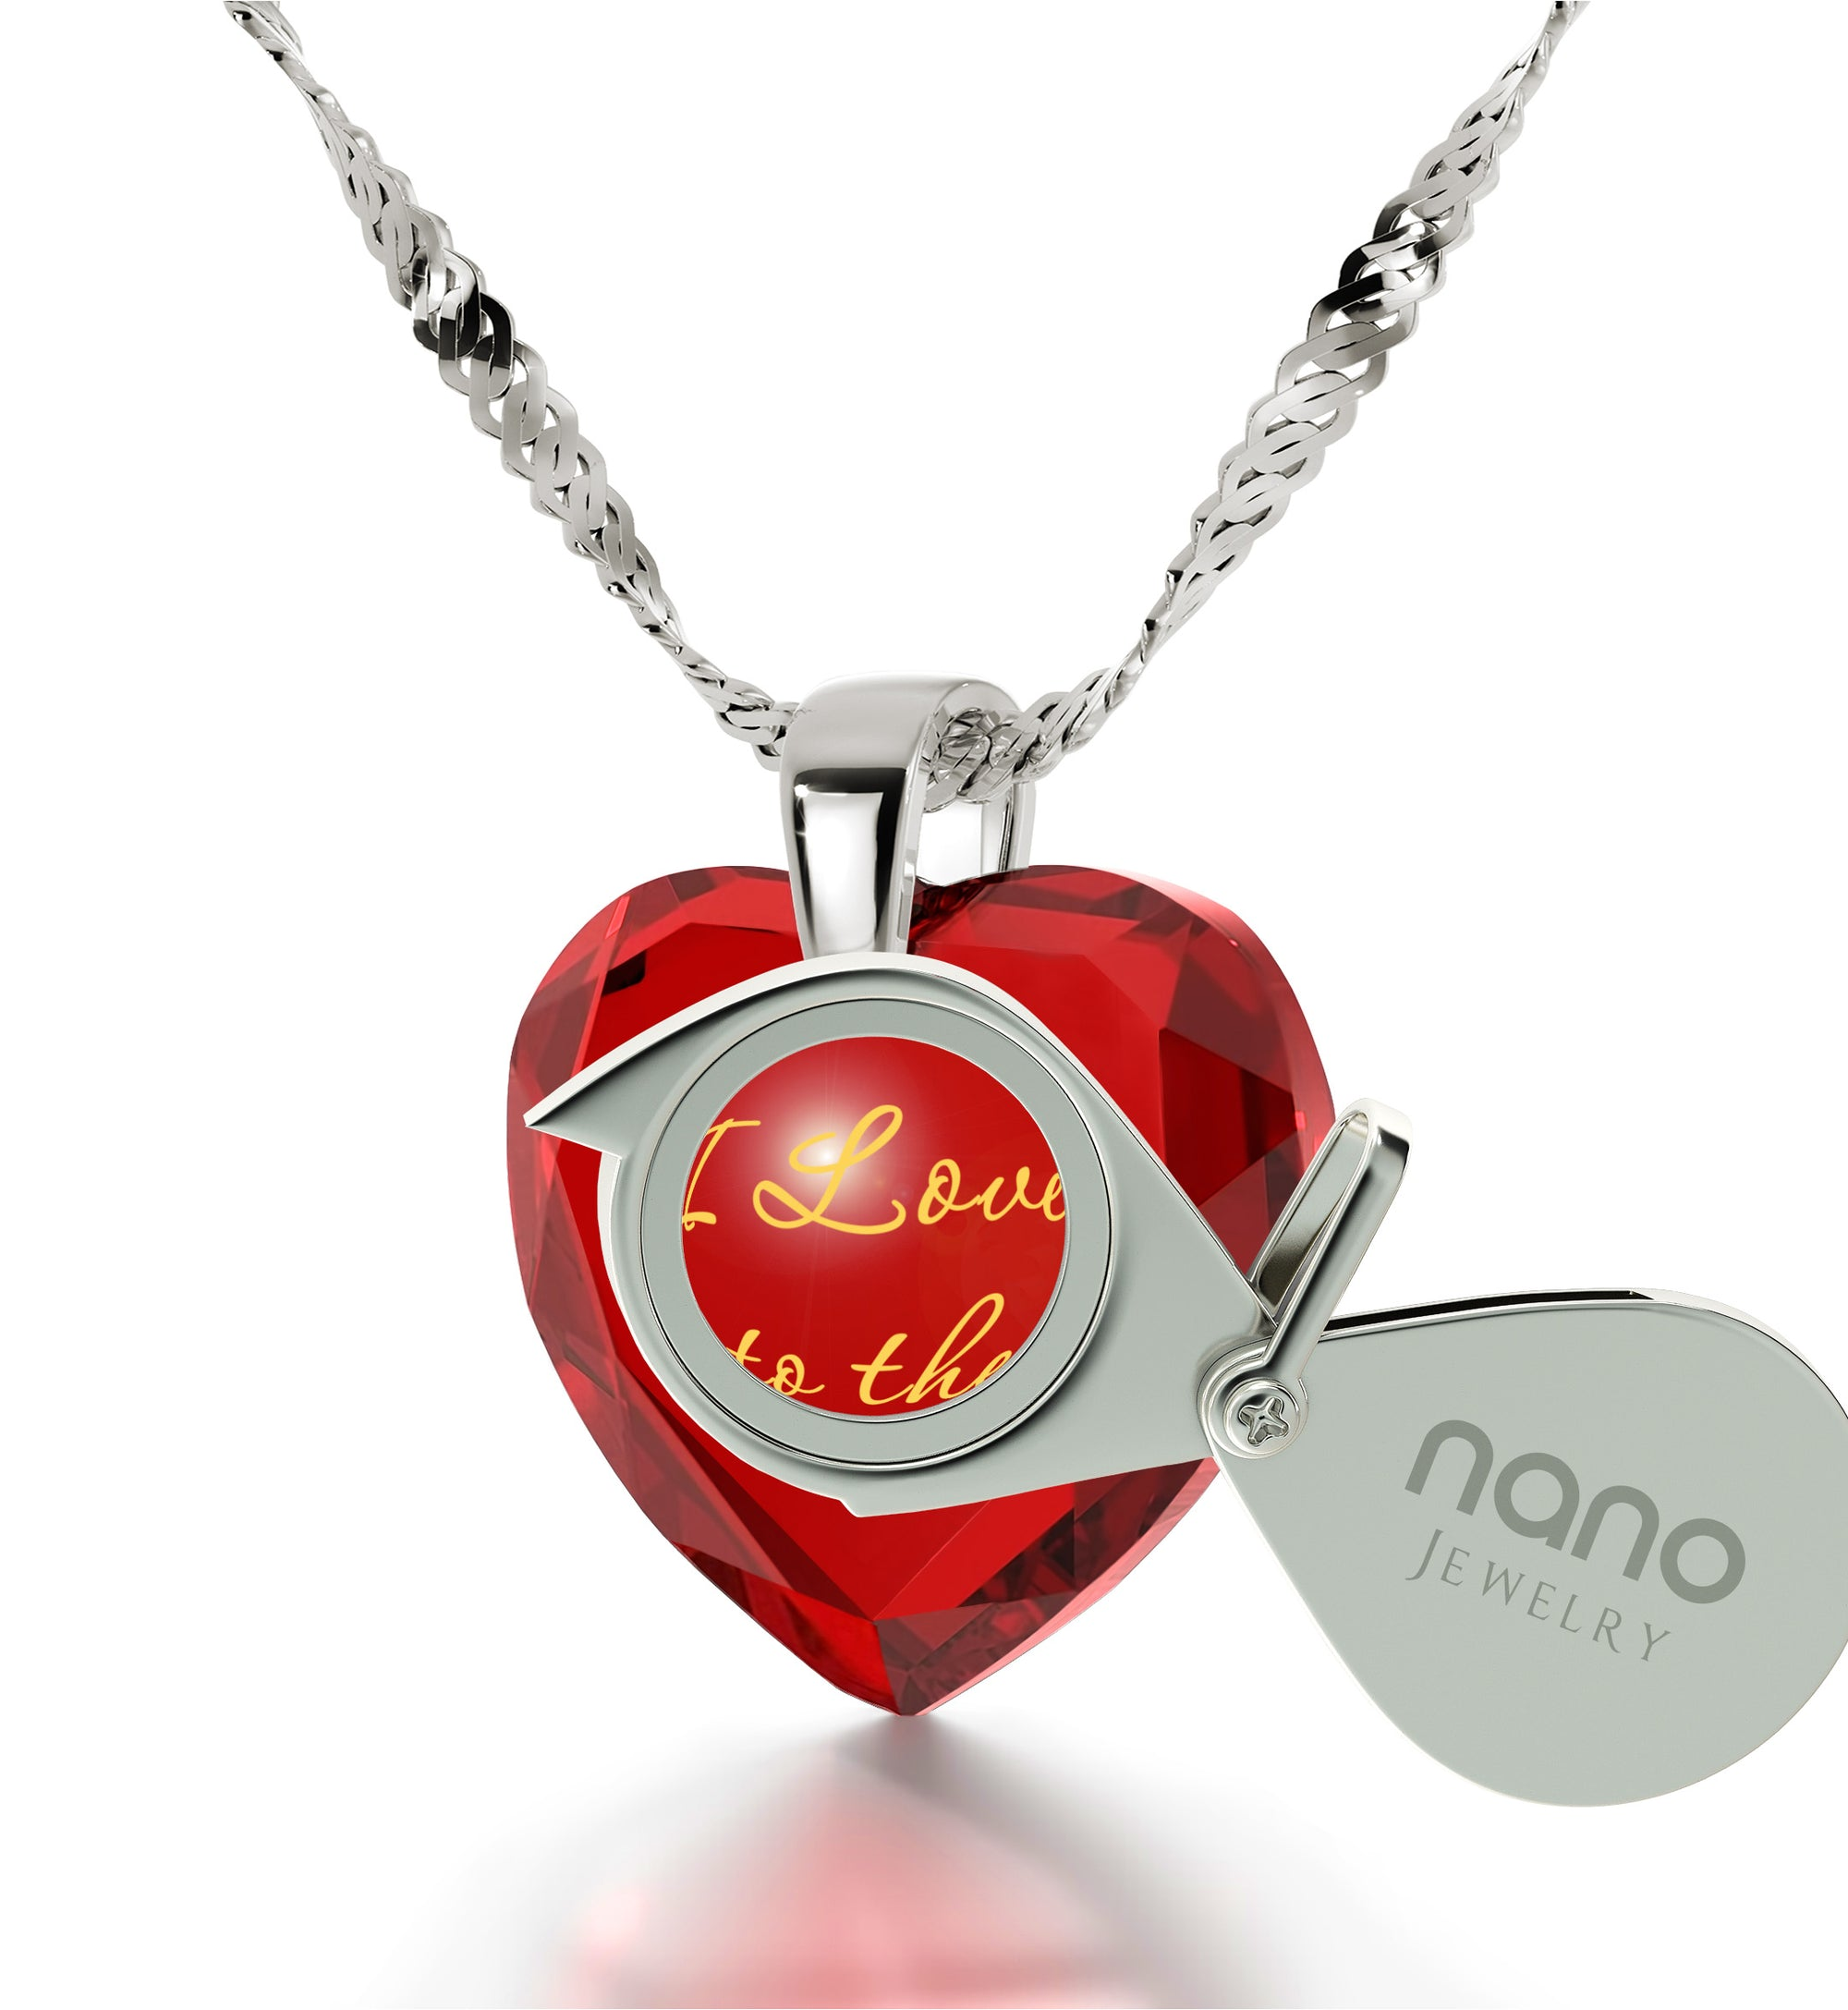 pendant necklace products red jewelry heart lalique necklaces the enlarged realreal